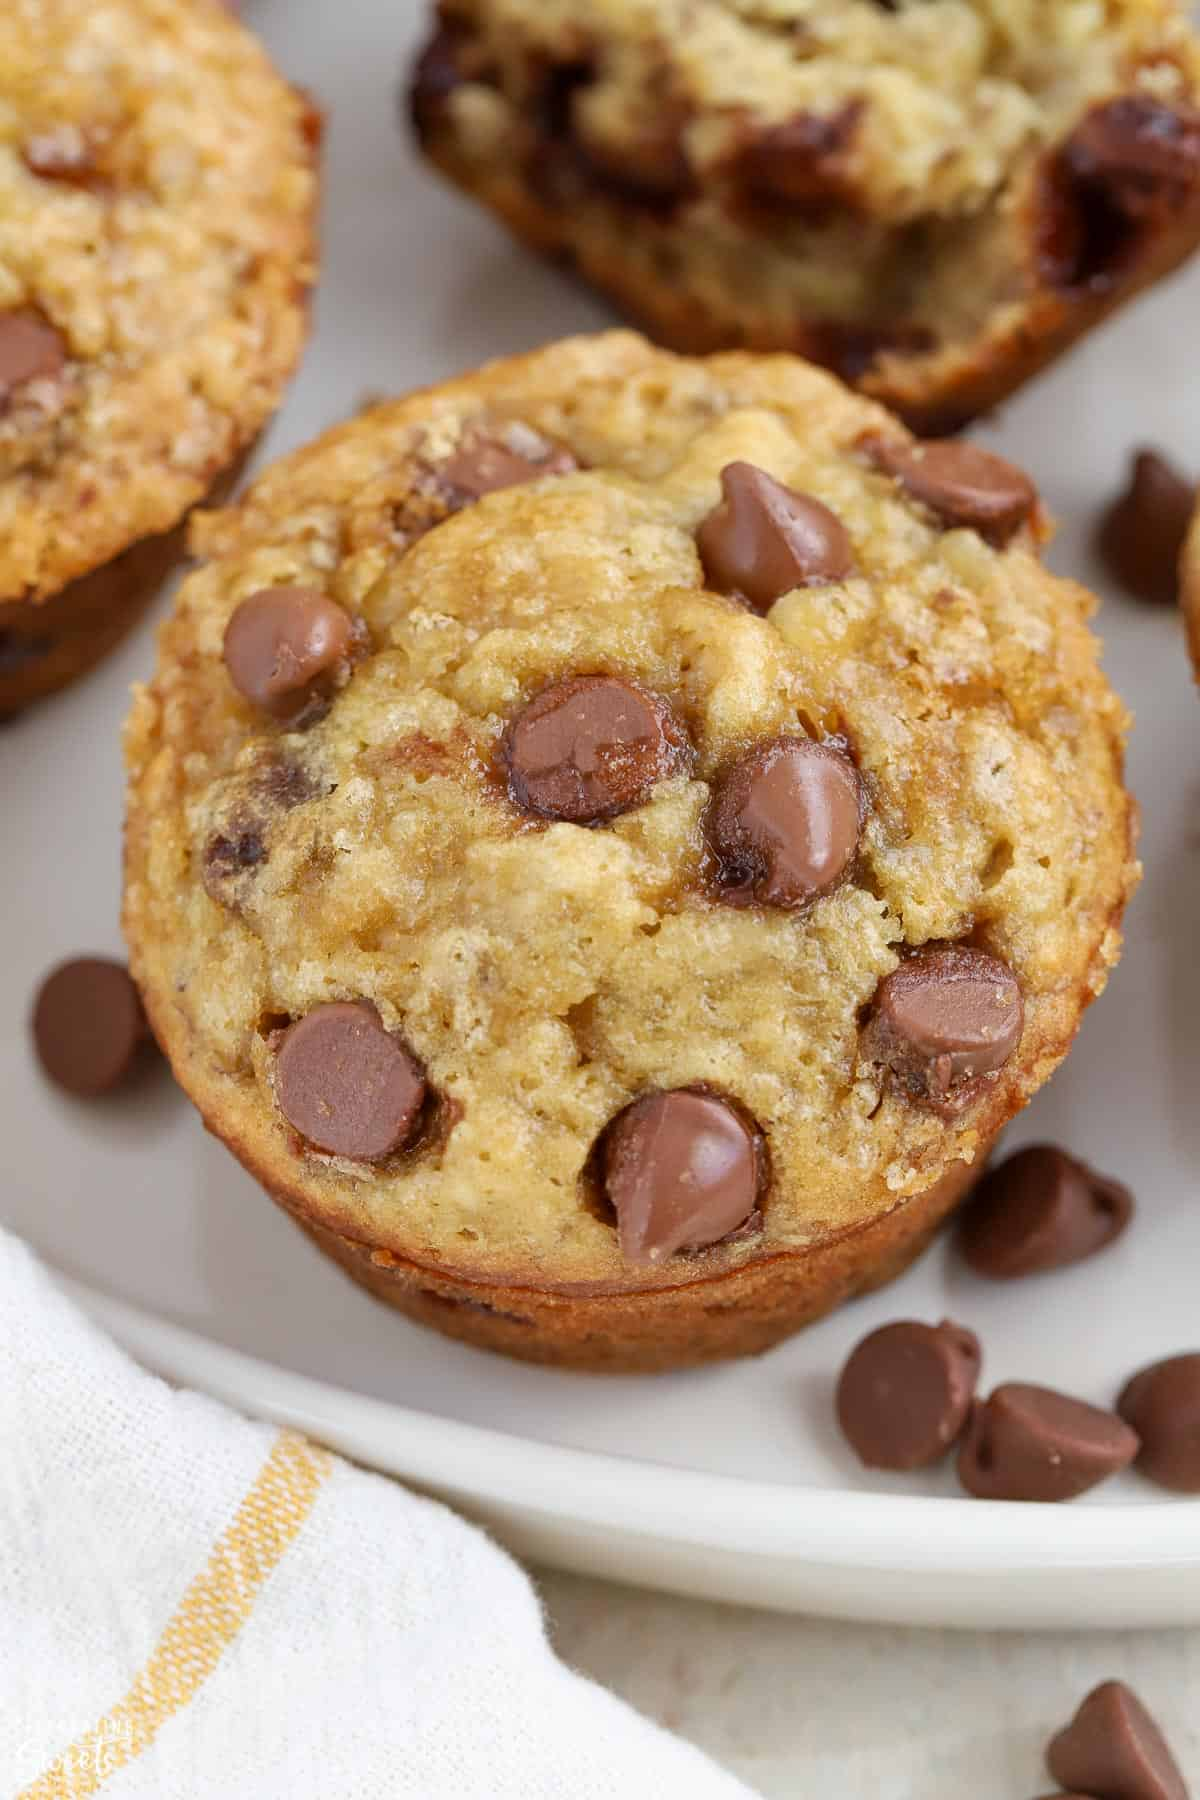 Close up of Banana Chocolate Chip Muffin on a white plate